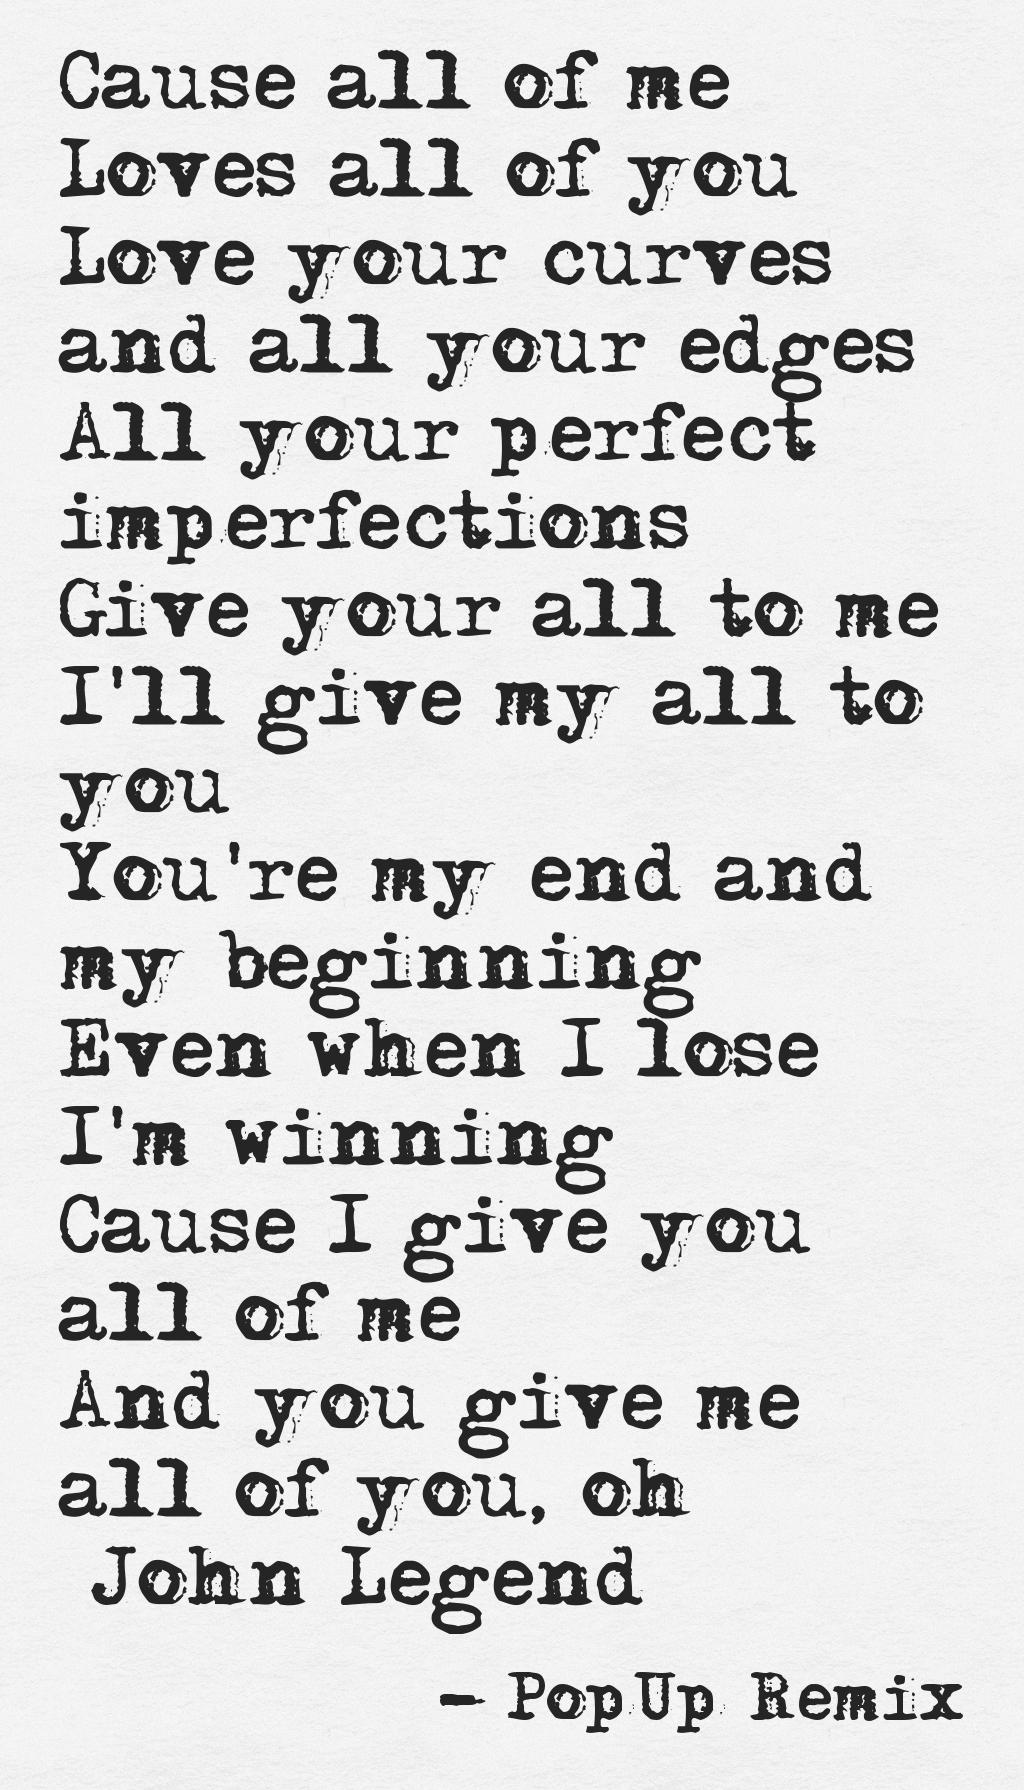 Quotes about Love in song lyrics (25 quotes)